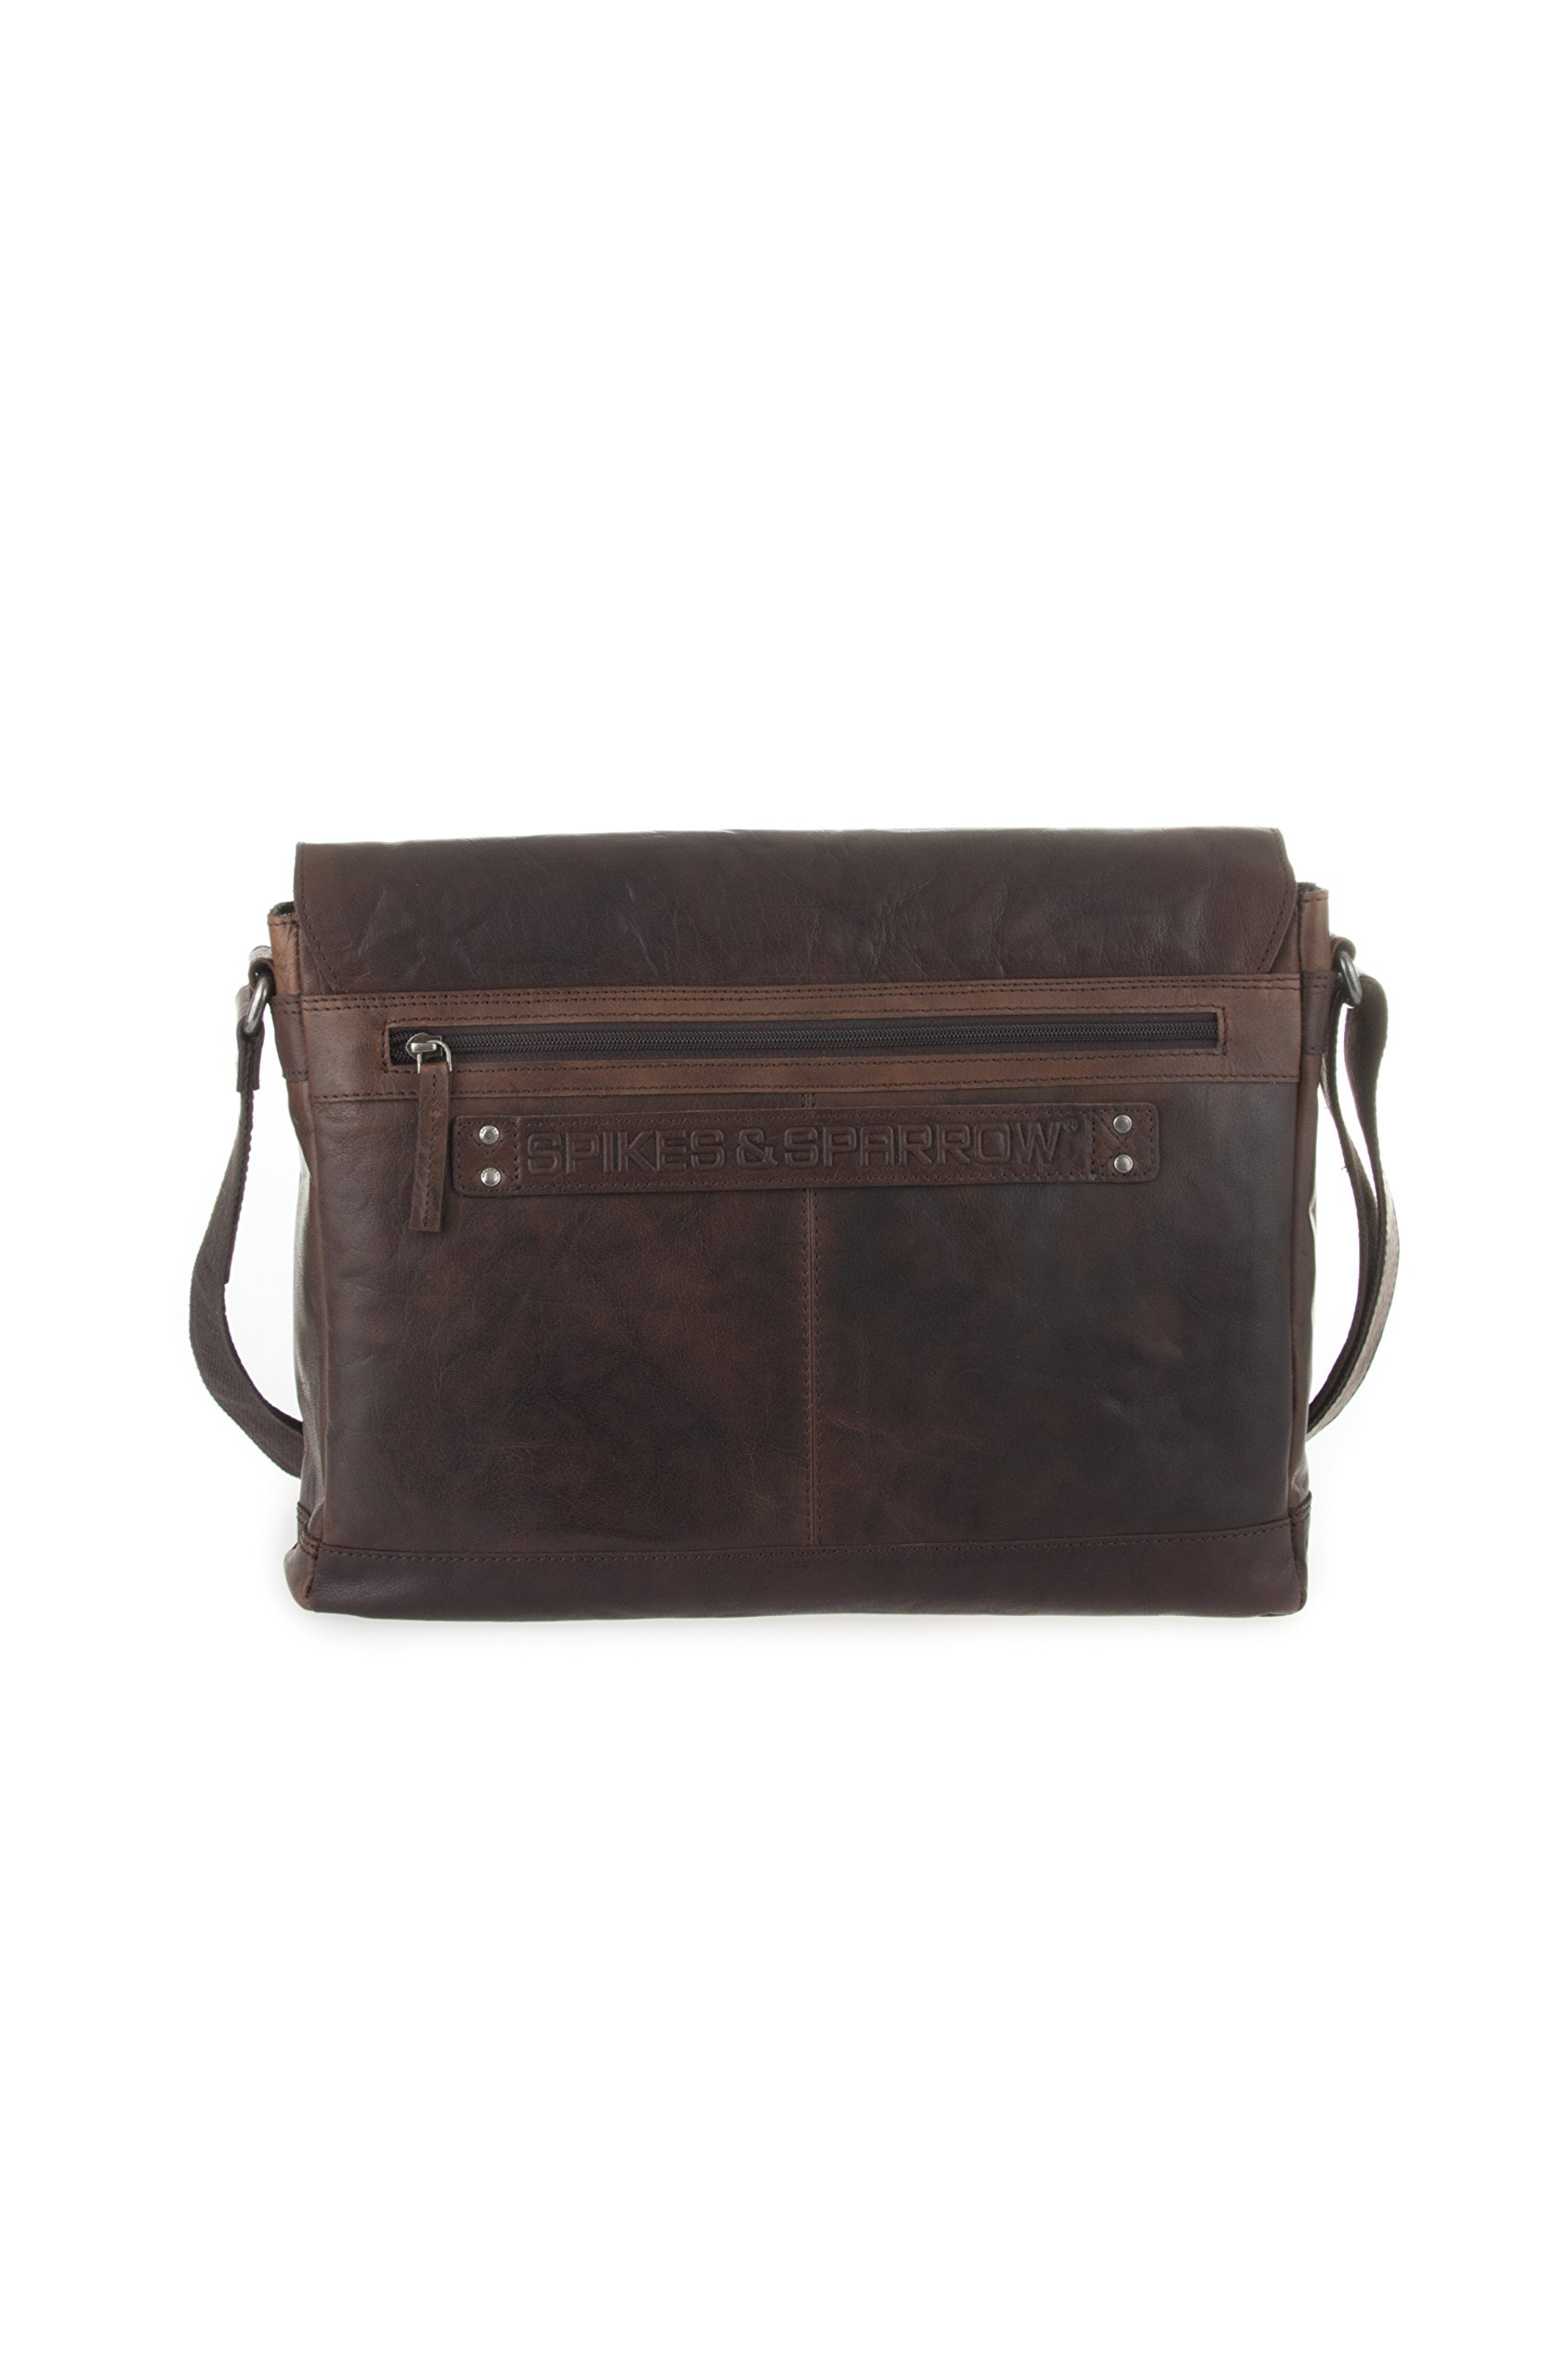 Spikes and Sparrow 594H14001 Noah Business Messenger Bag, Dark Brown by Spikes & Sparrow